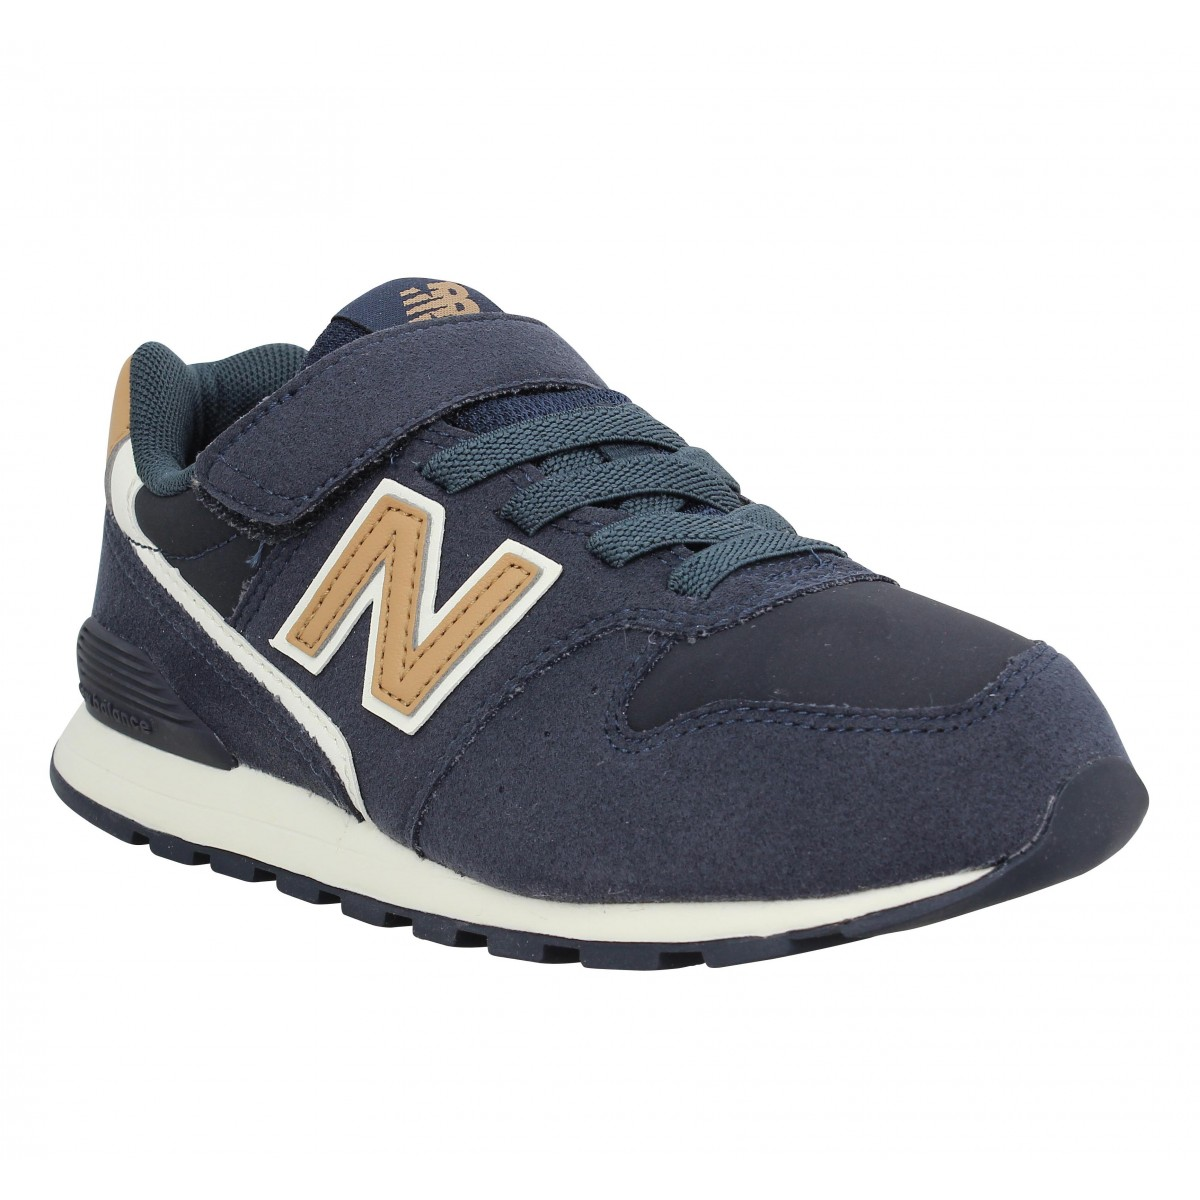 Baskets NEW BALANCE KV996 toile Enfant Navy